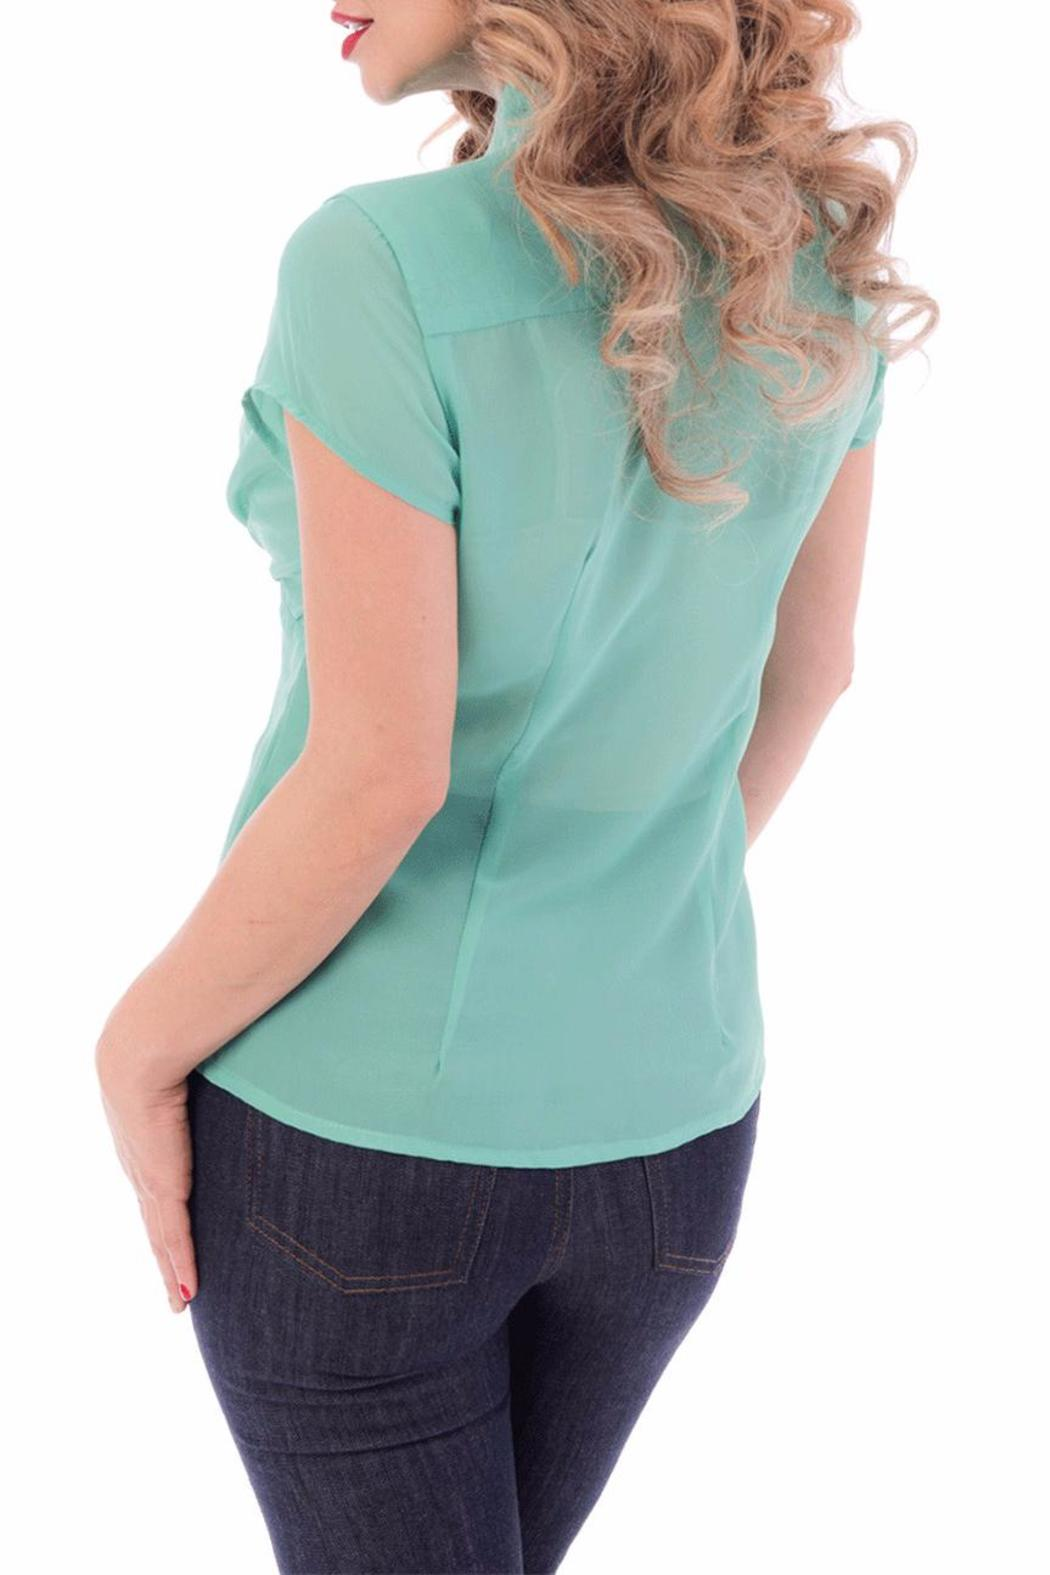 Steady Clothing Chiffon Tie Top - Front Full Image